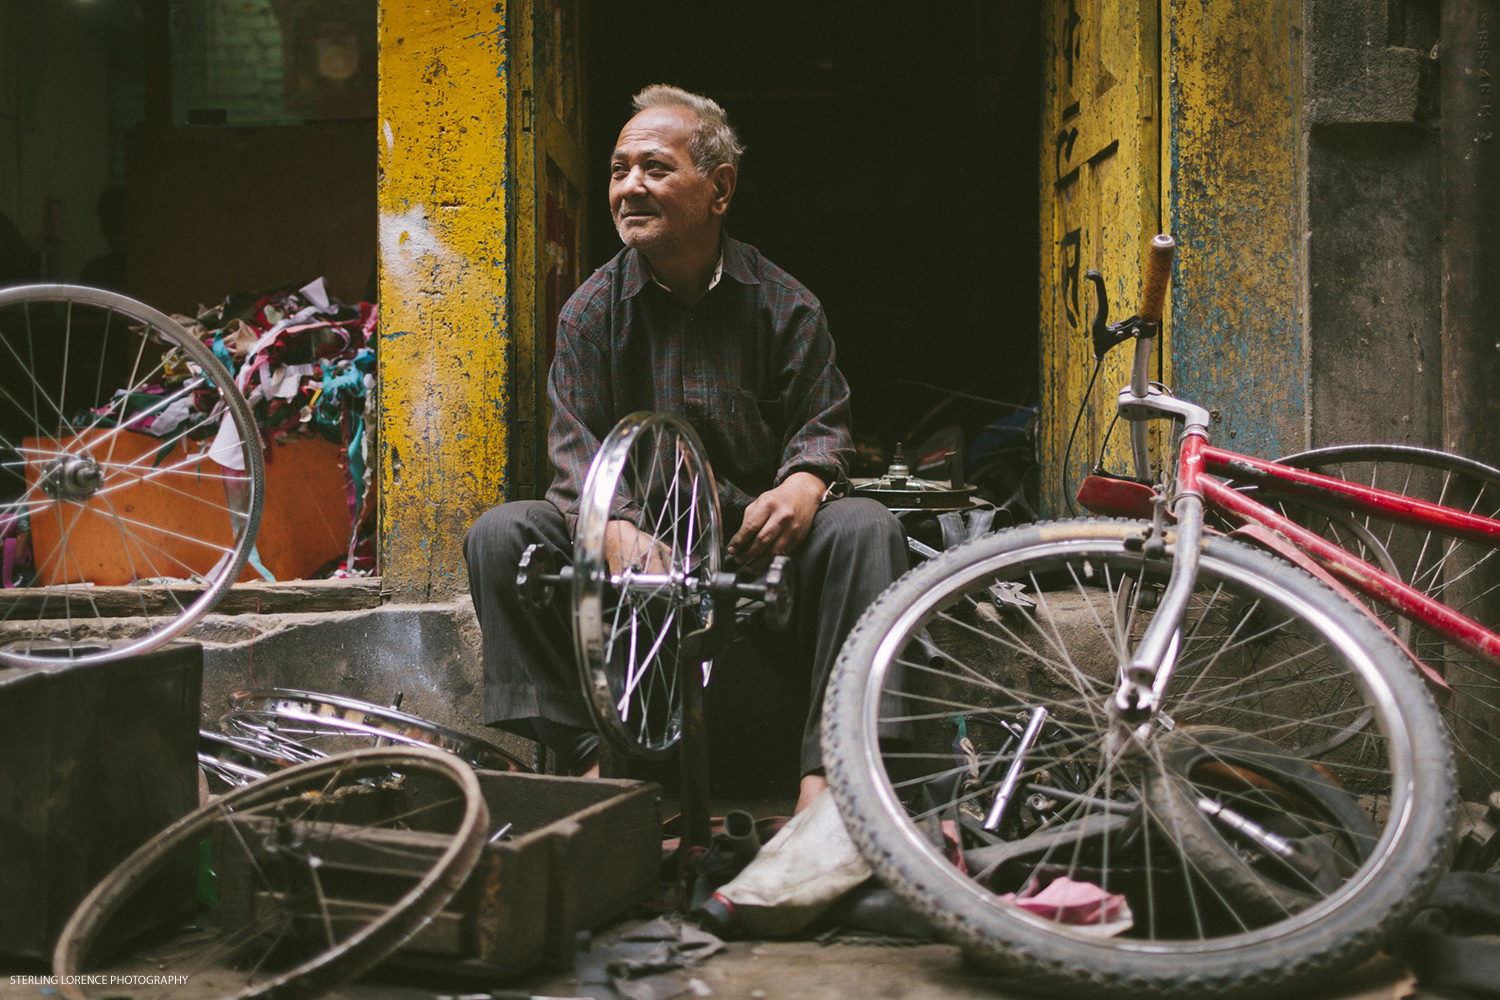 local bike mechanic, 40+ years at the job, wheel truer, kathmandu, nepal.